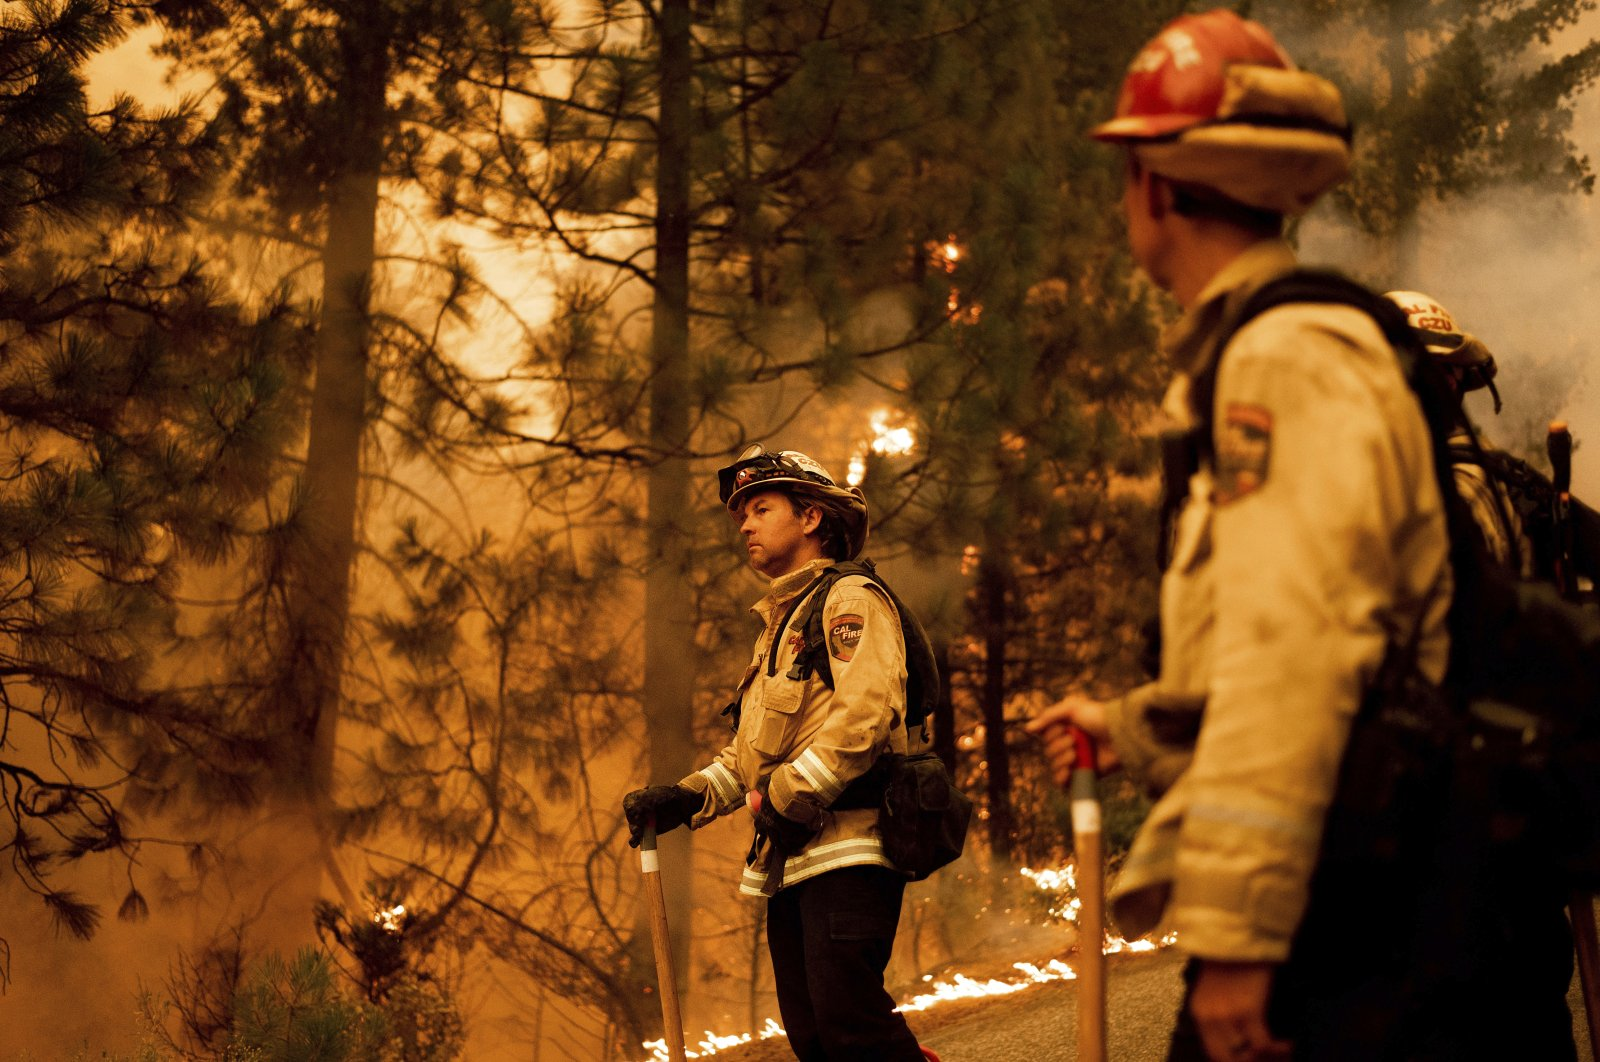 Firefighter Jason Prado monitors flames as his crew burns vegetation to stop the Dixie Fire from spreading near Prattville in Plumas County, California, U.S., July 23, 2021. (AP Photo)